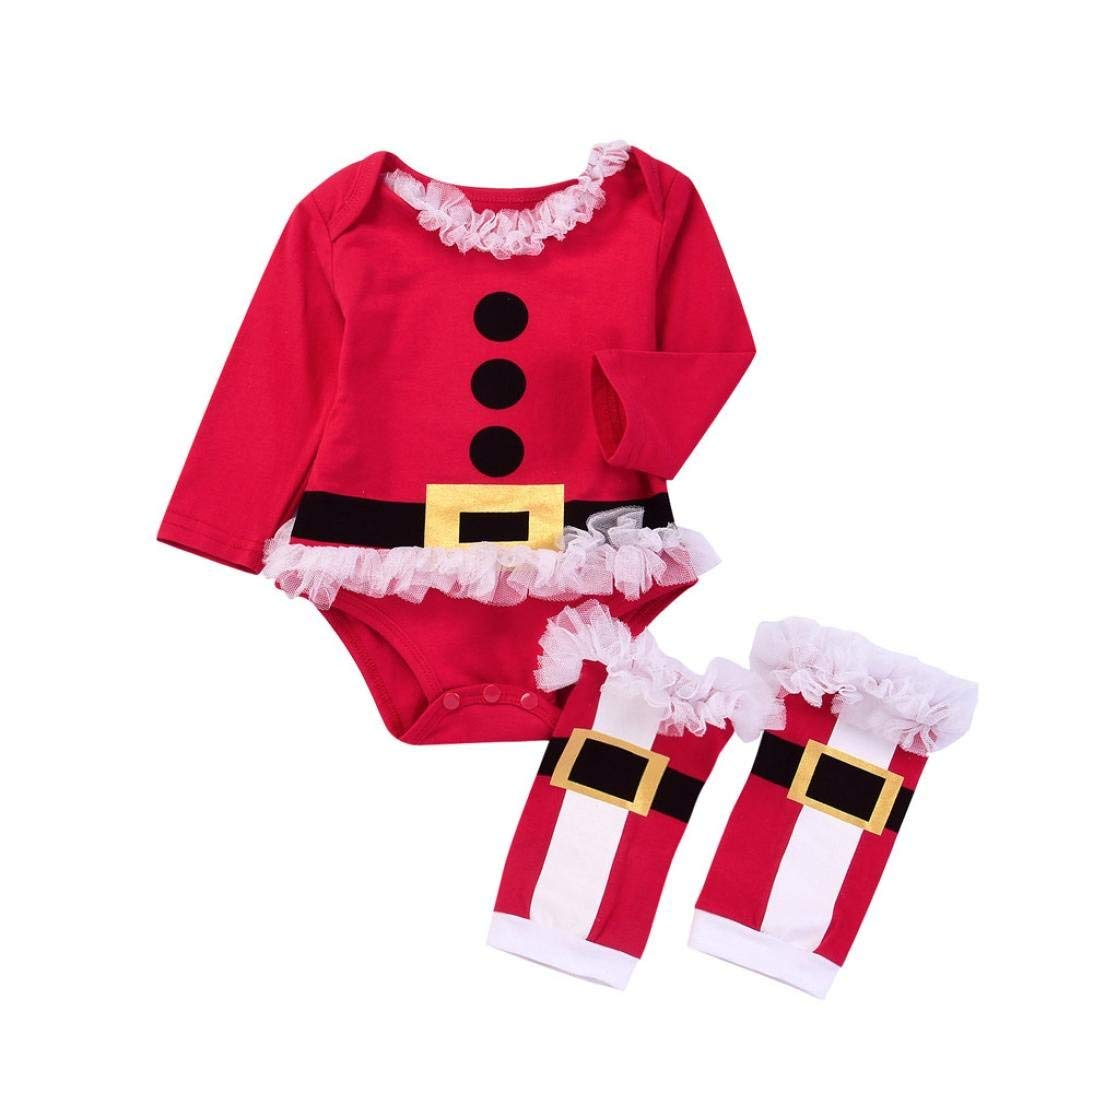 0633cbe5977c Get Quotations · Christmas Baby Clothes,2PCS Infant Baby Girls boys Christmas  Tutu Romper+Leg Warmer Set